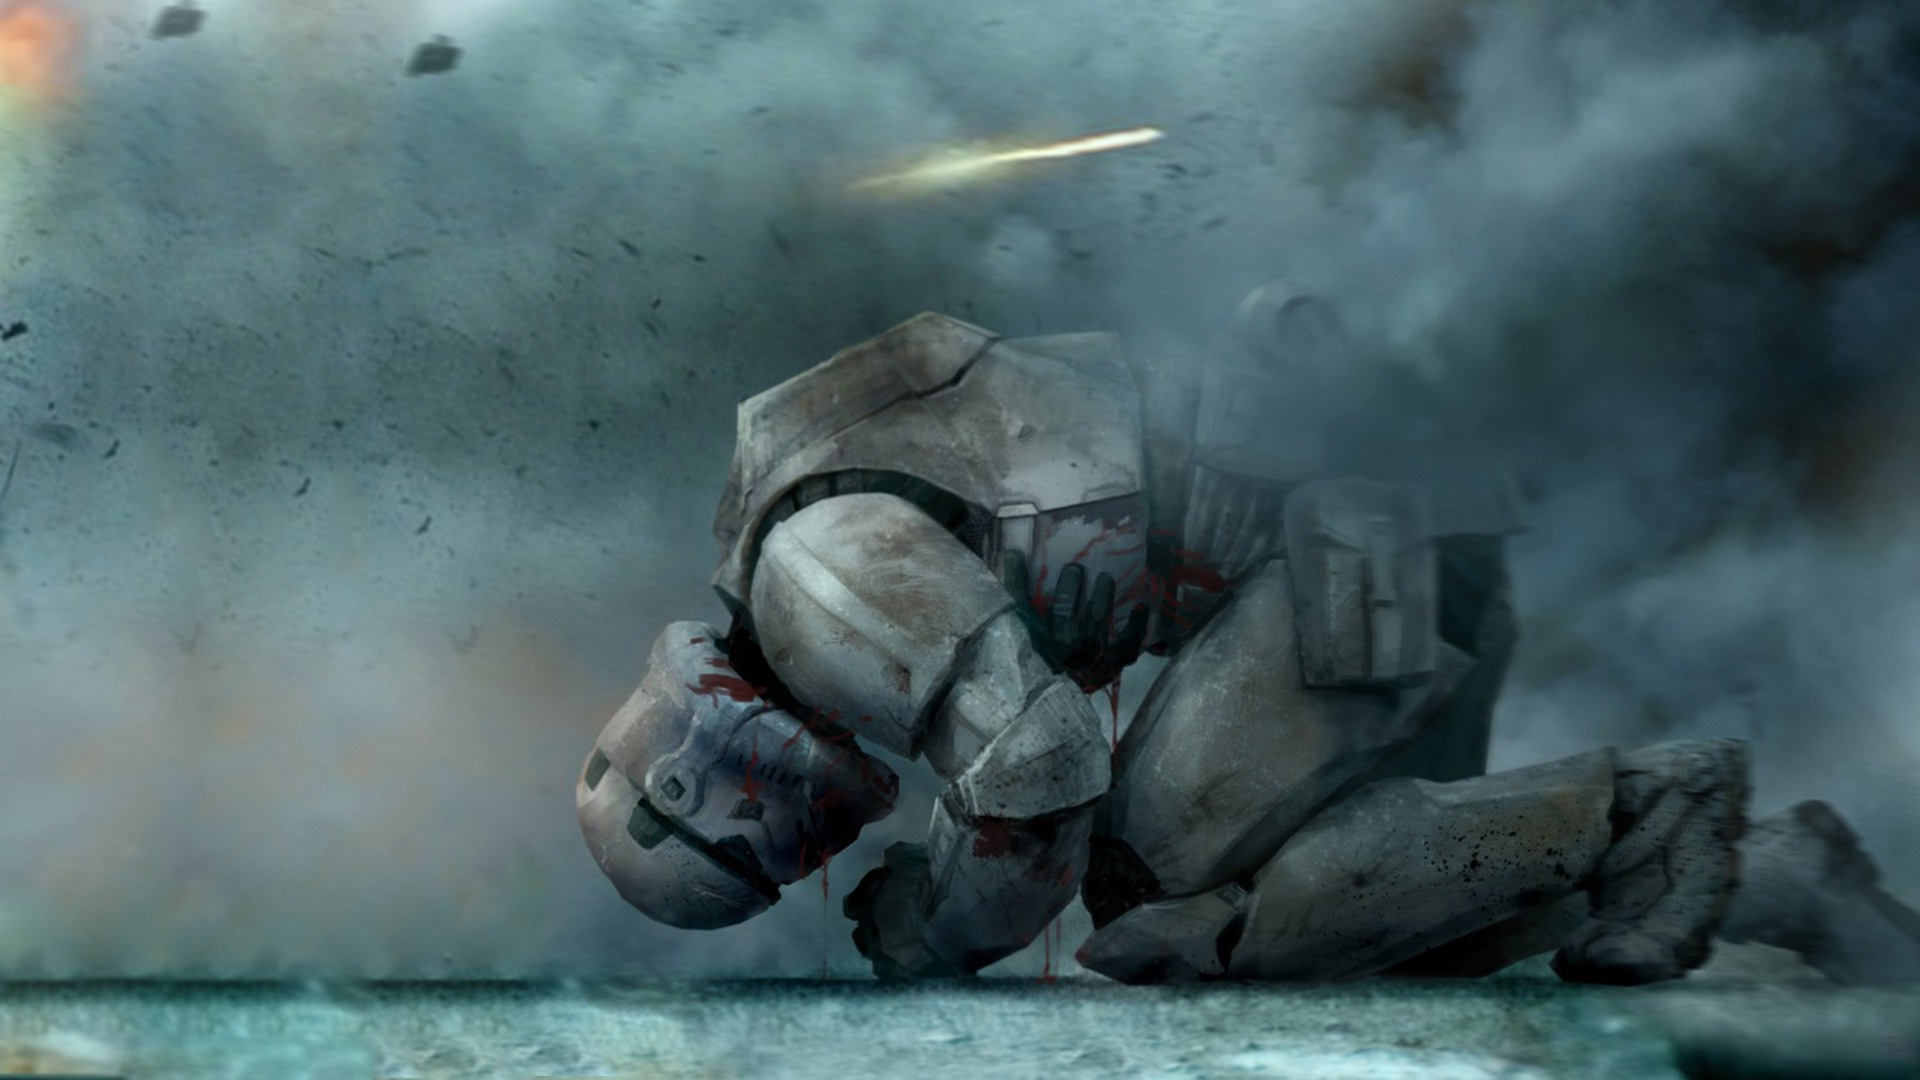 Stormtrooper Wallpaper 1920x1080 Posted By Ethan Thompson